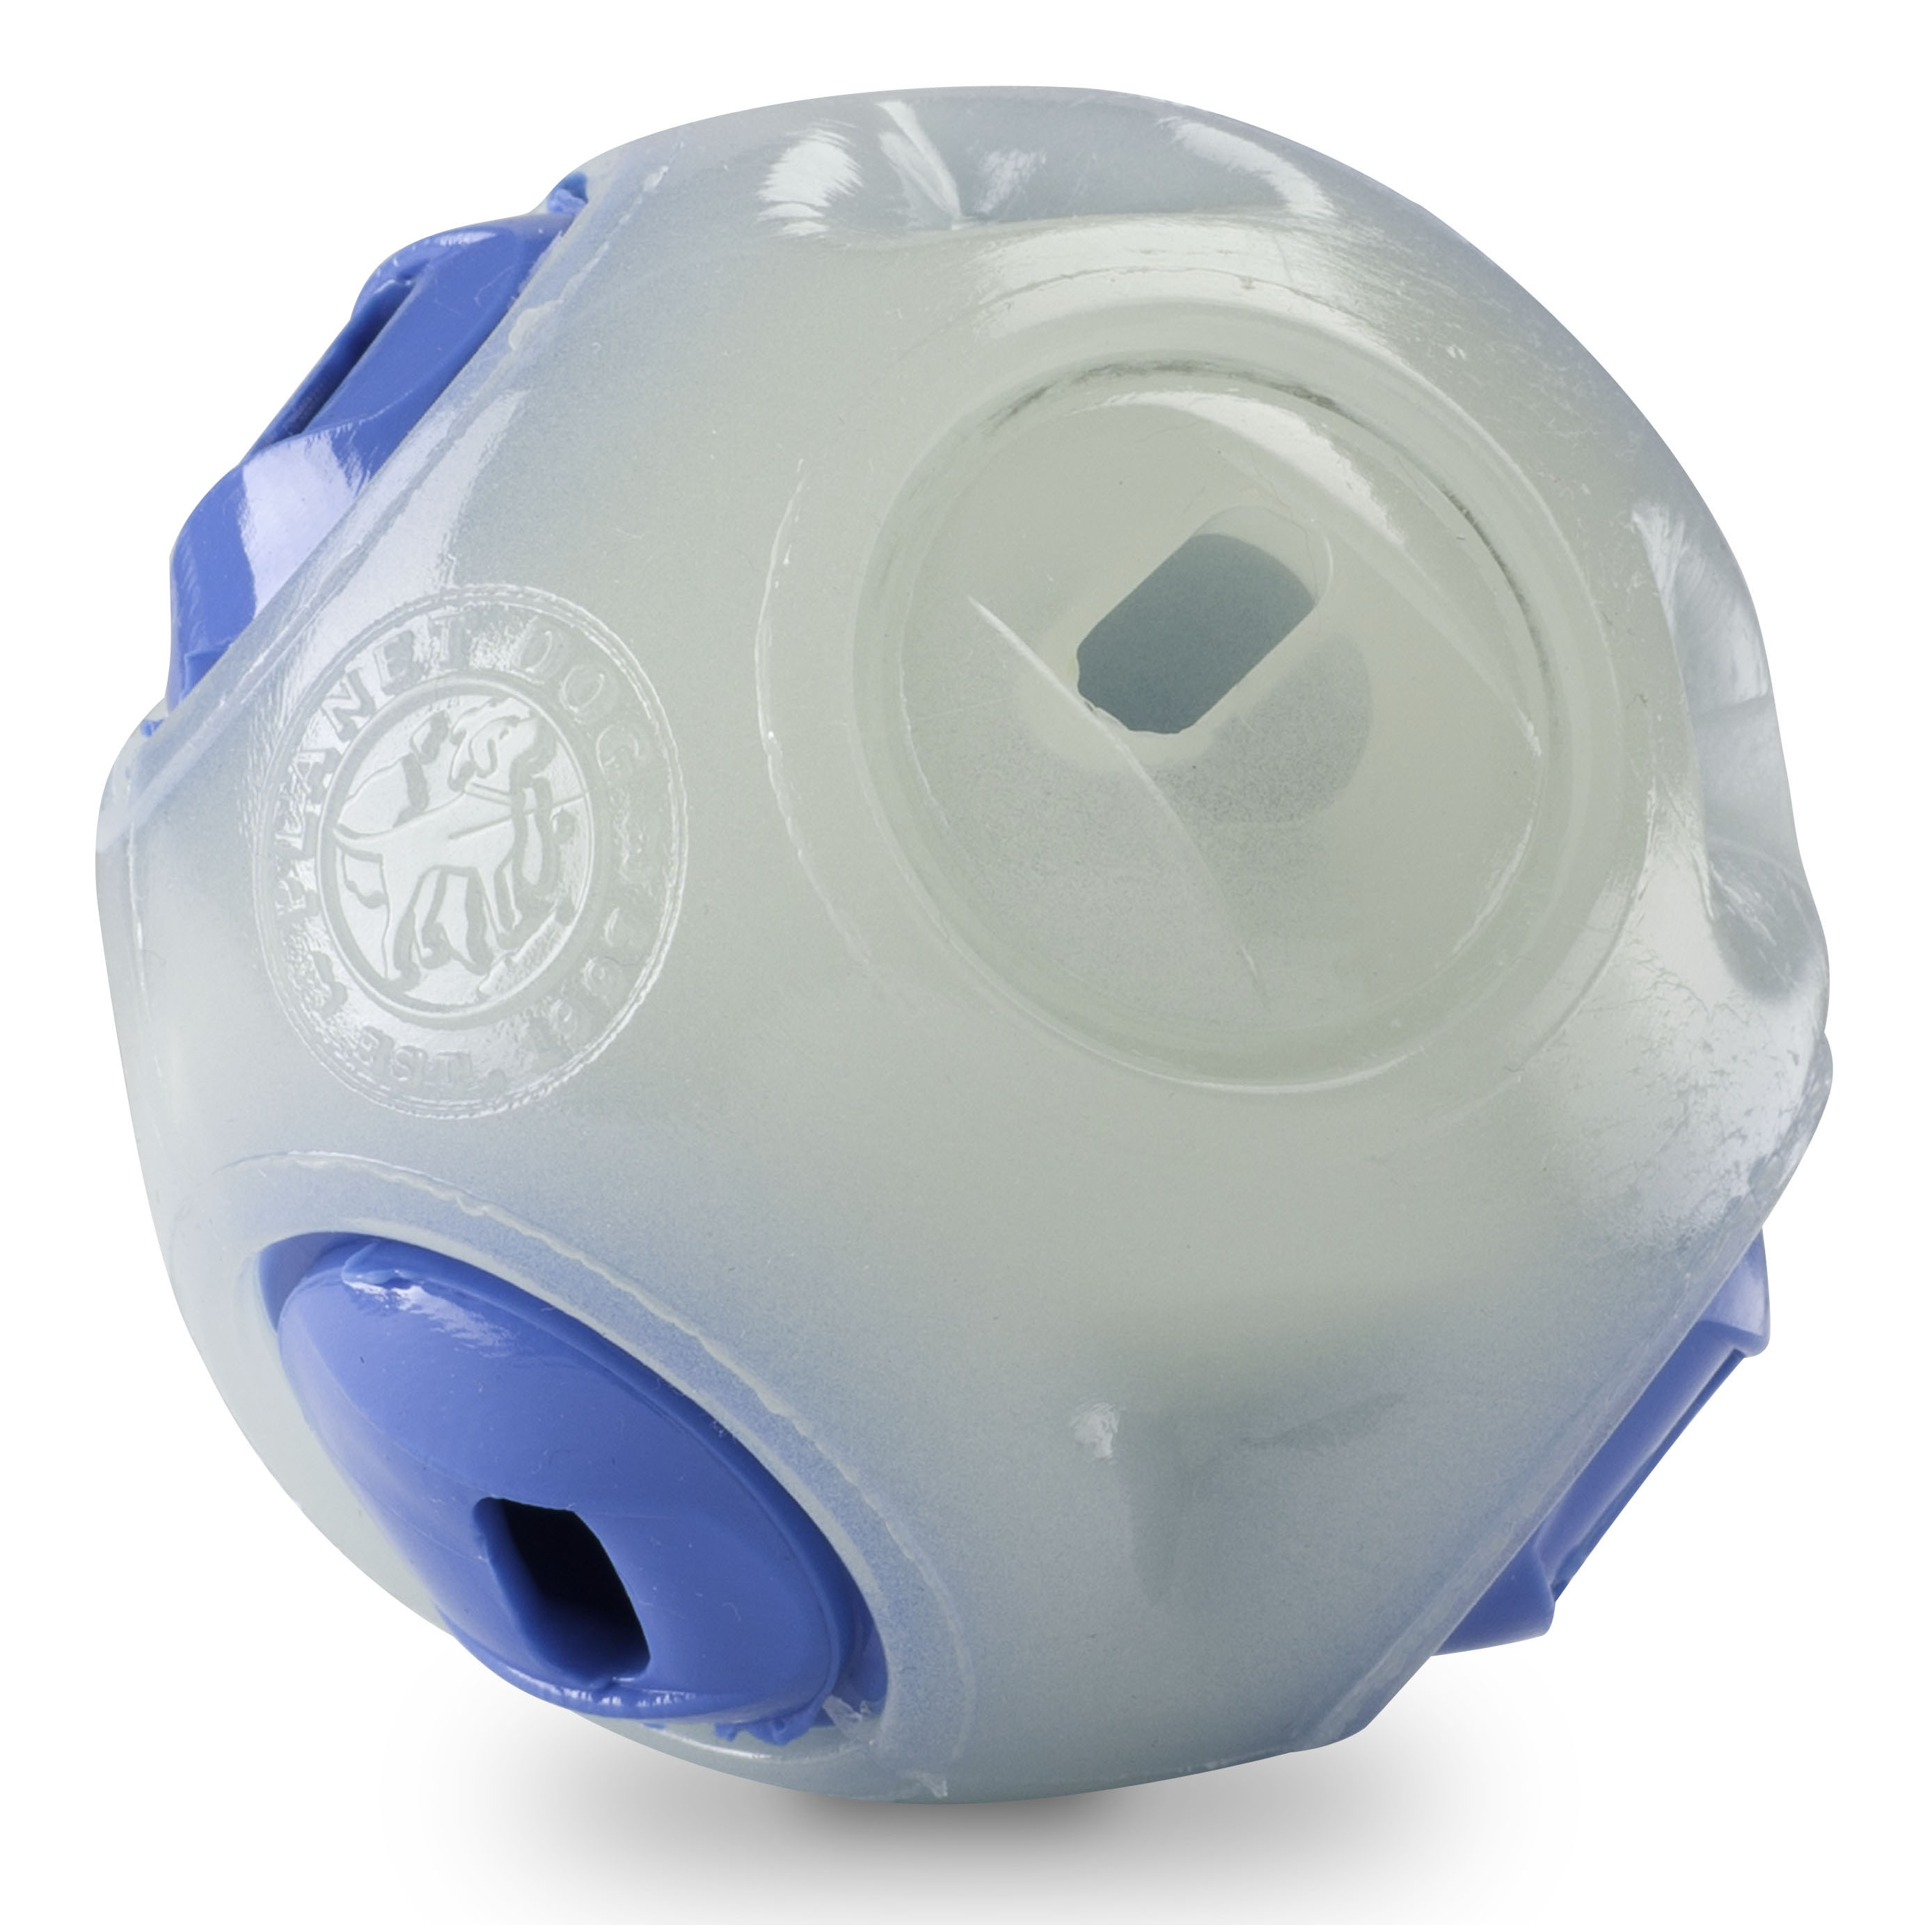 Dog Toy: Whistle Ball